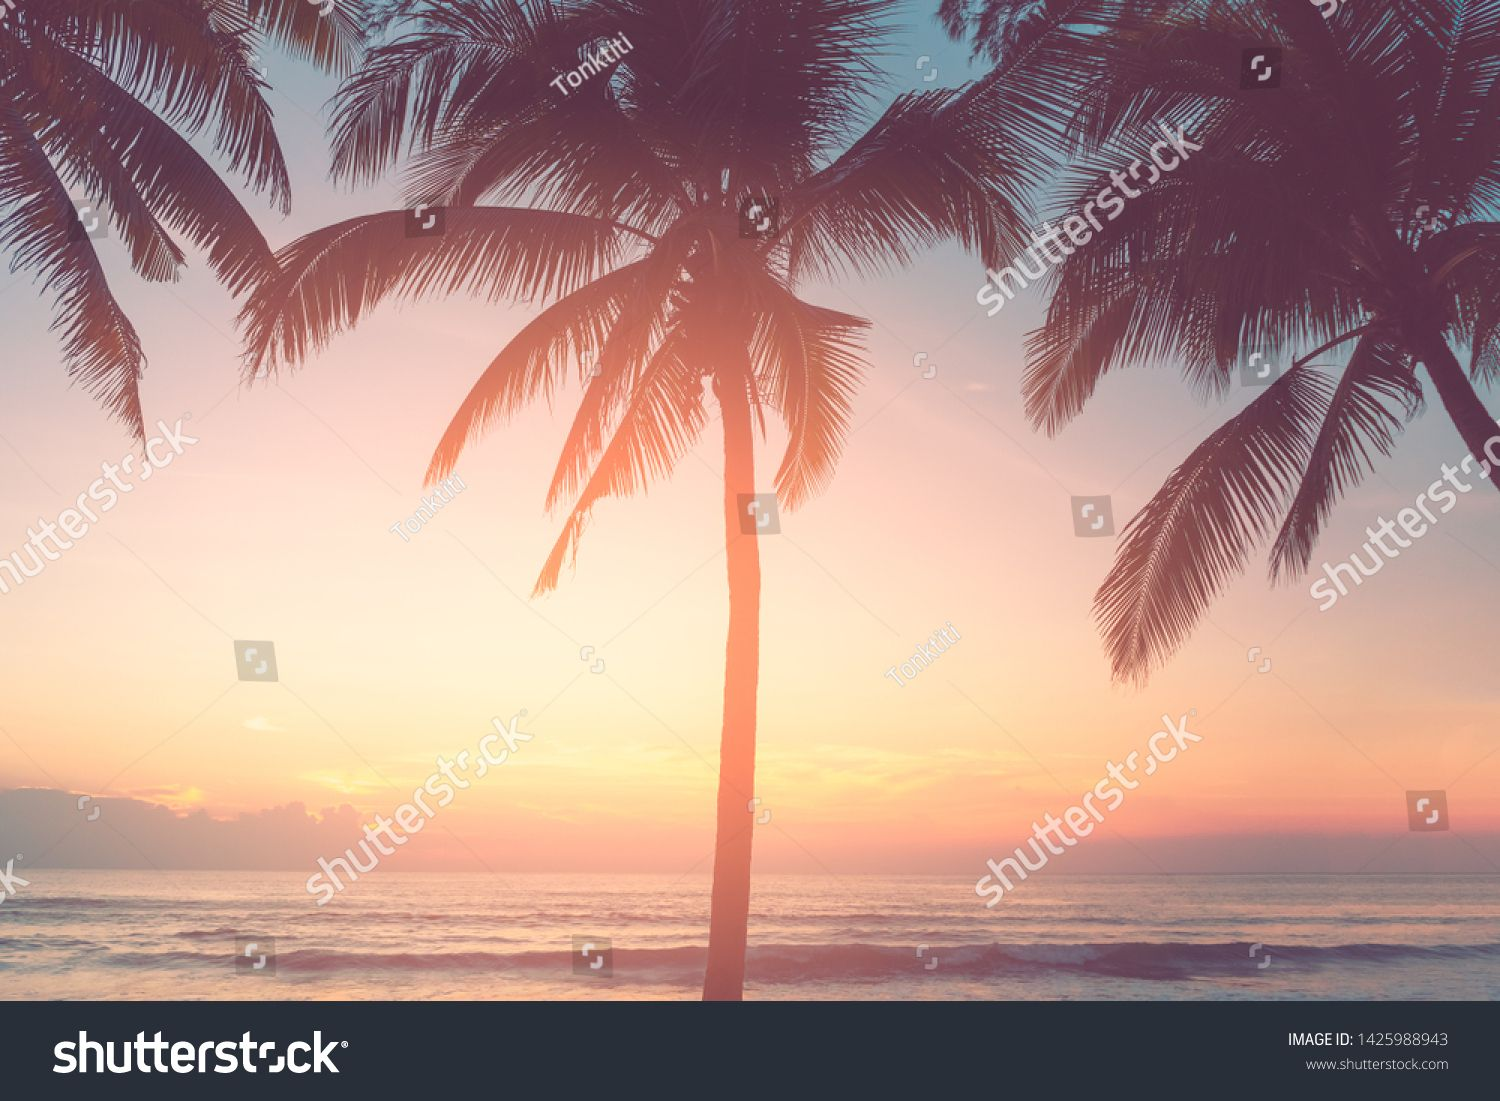 Beautiful Tropical Beach With Palm Tree On Sunset Twilight Sky Clouds Abstract Background Copy Space O Nature Travel Adventure Tropical Beach Beach Palm Trees Tropics palm trees sunset clouds sky